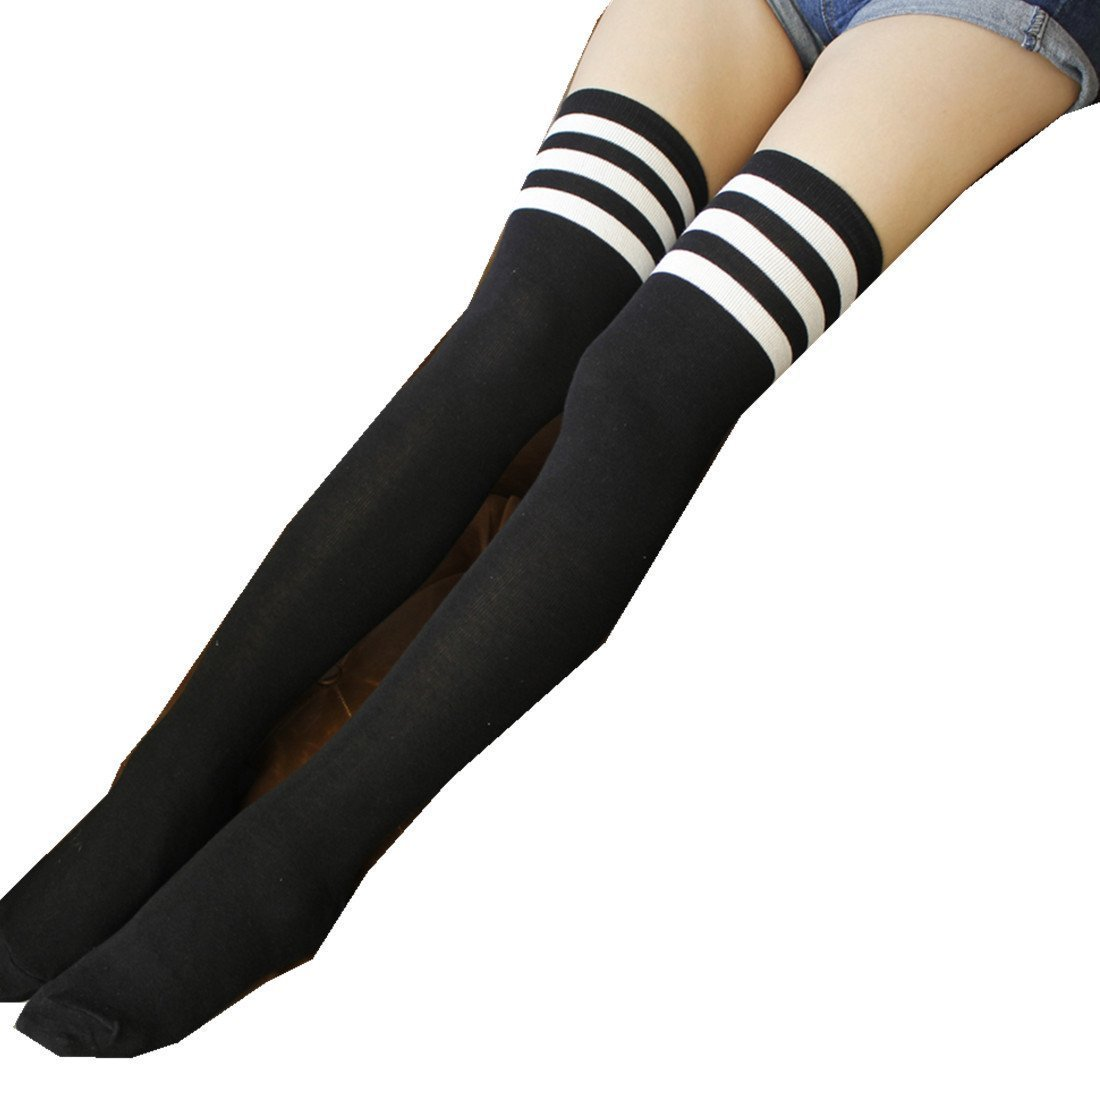 Womens Over Knee Stripe Socks Girls Thigh High Long Cosplay Socks Black White by Azue (Image #5)